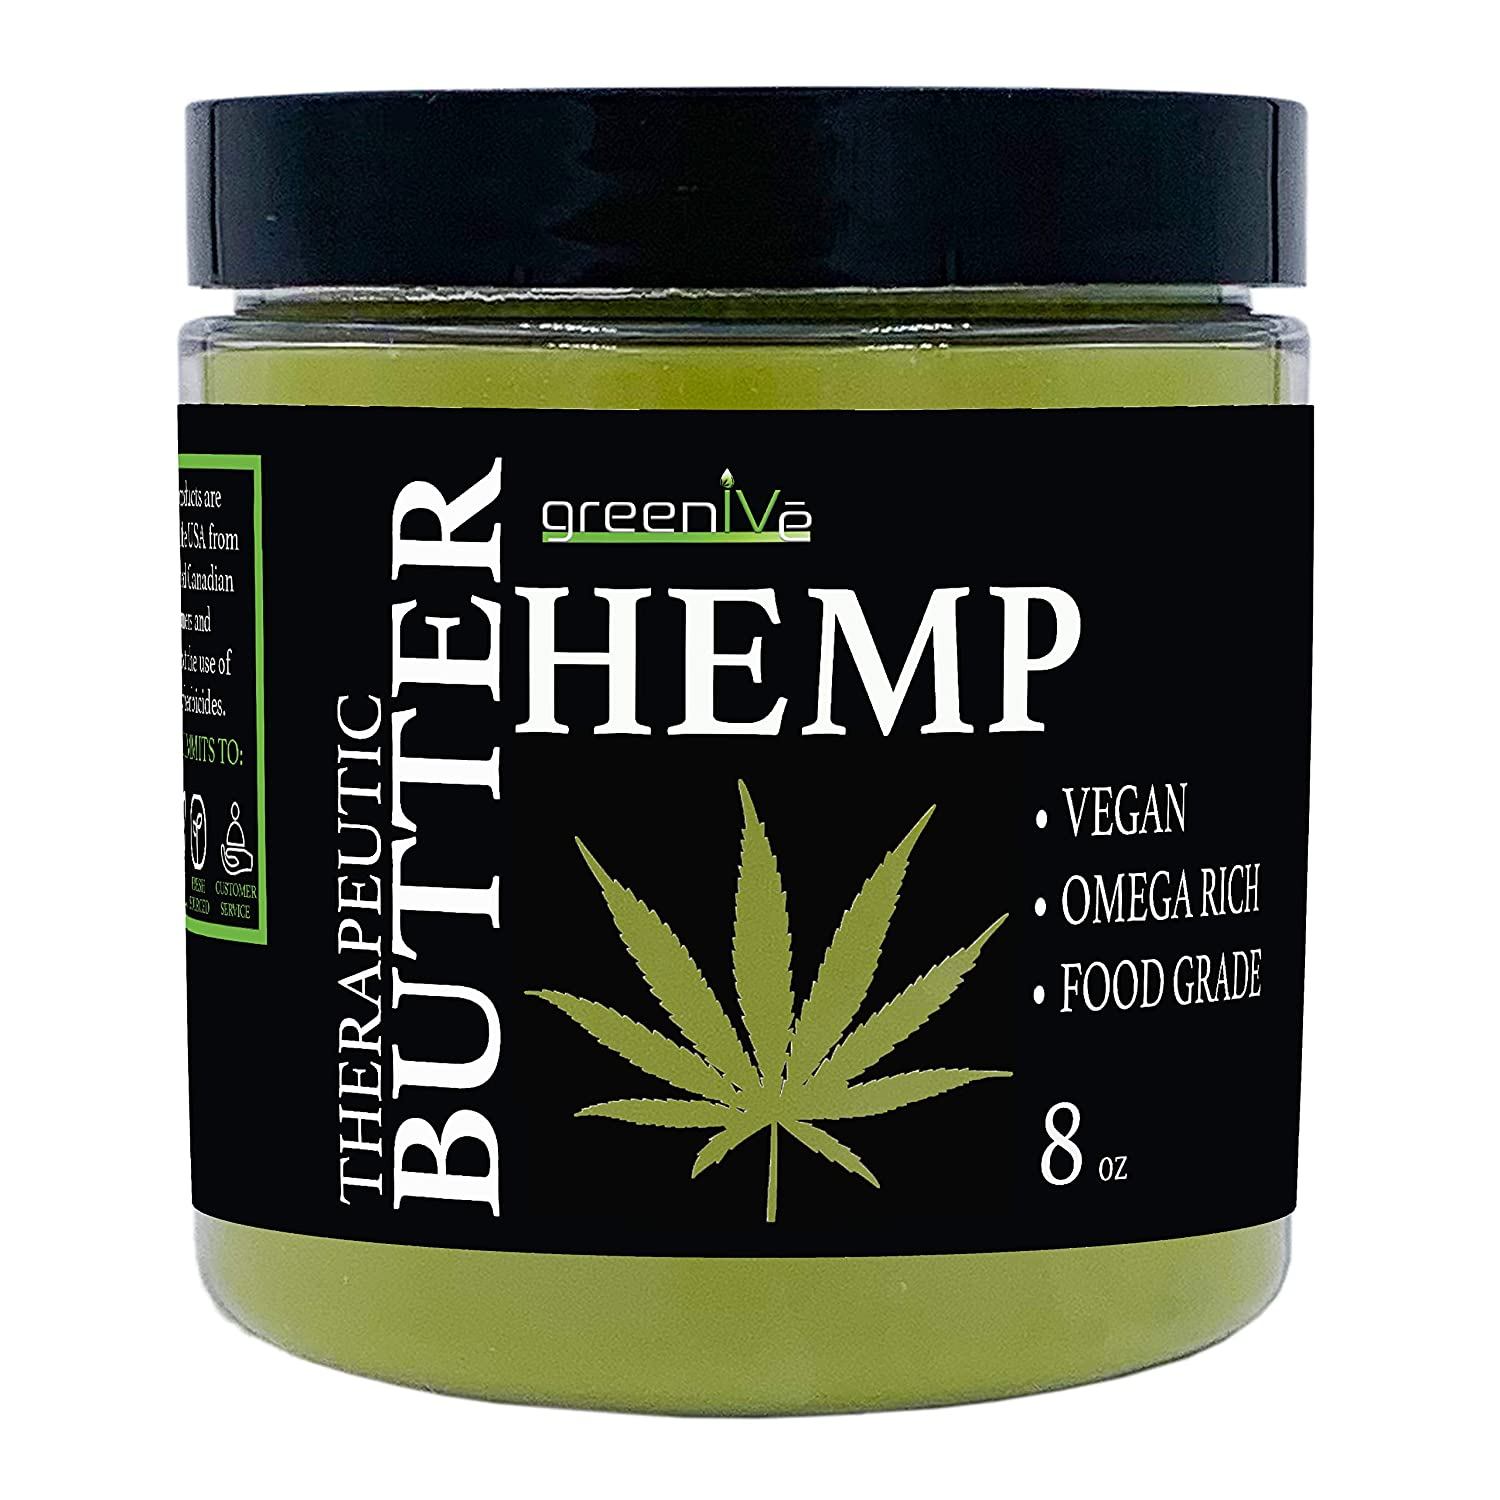 GreenIVe - Hemp Seed Butter - All Natural - Hemp Seed Butter - Exclusively on Amazon (8 Ounce)